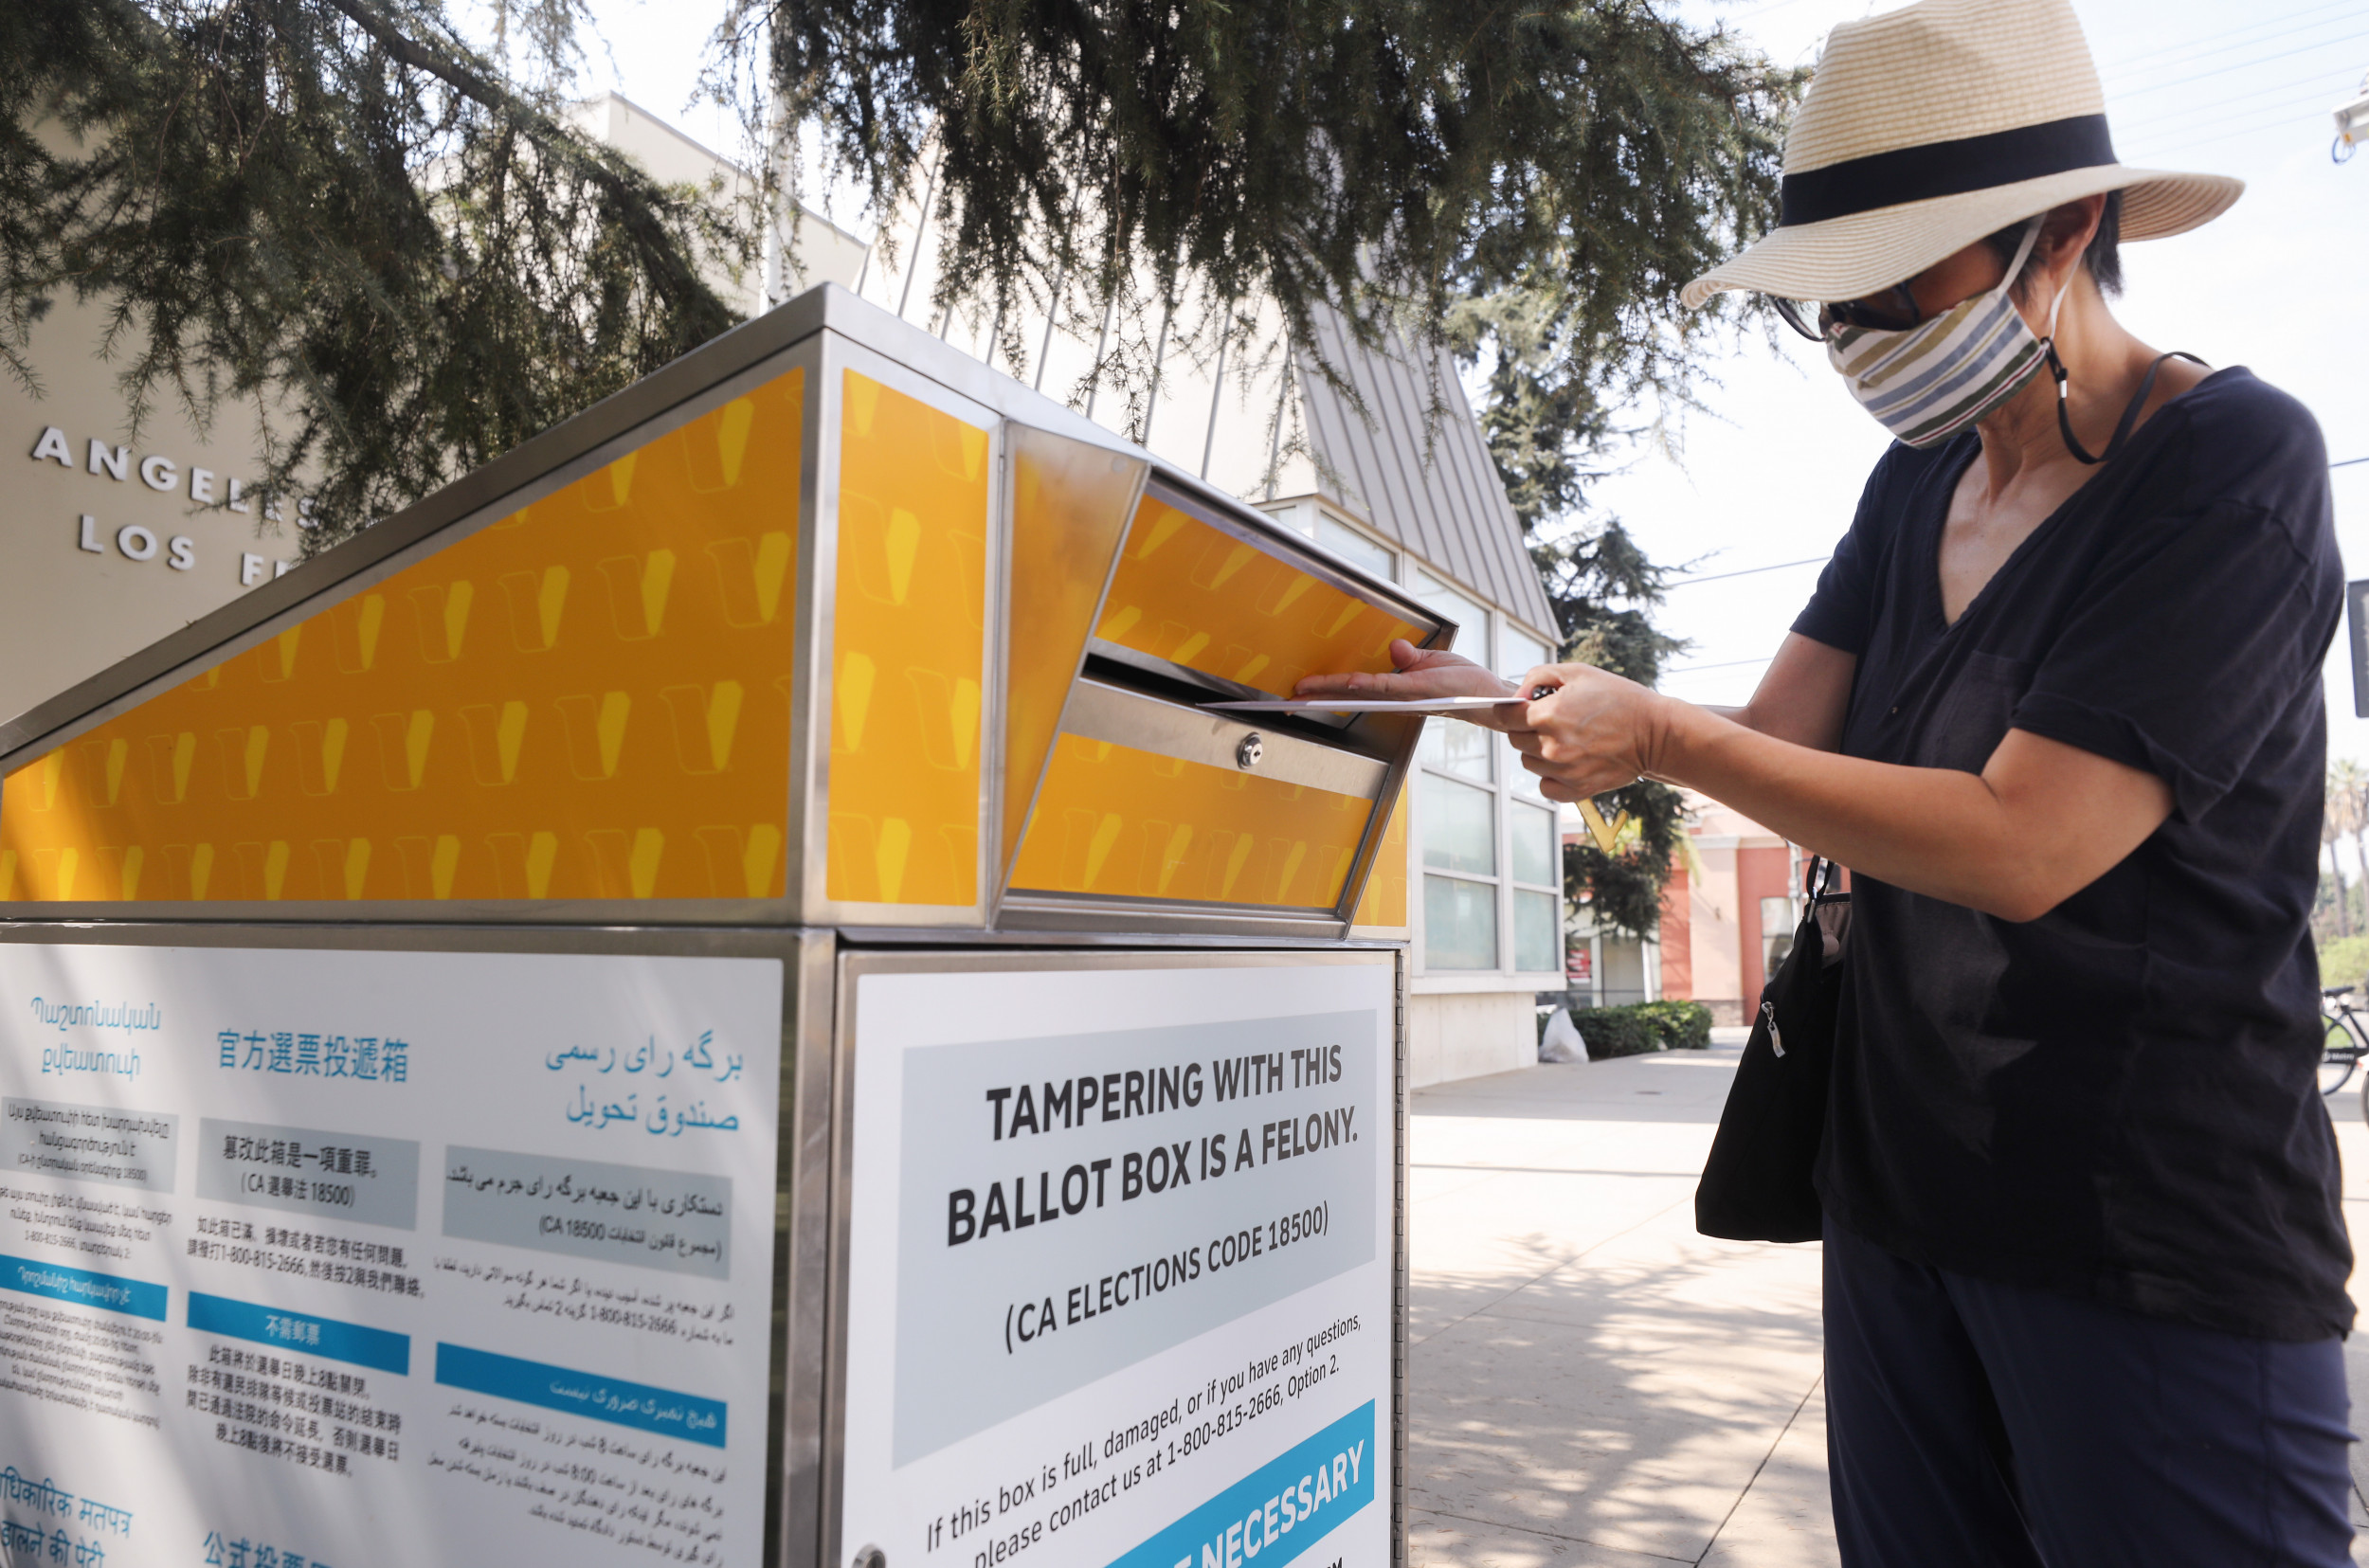 California GOP accused of setting up fake official ballot drop-off boxes across the state